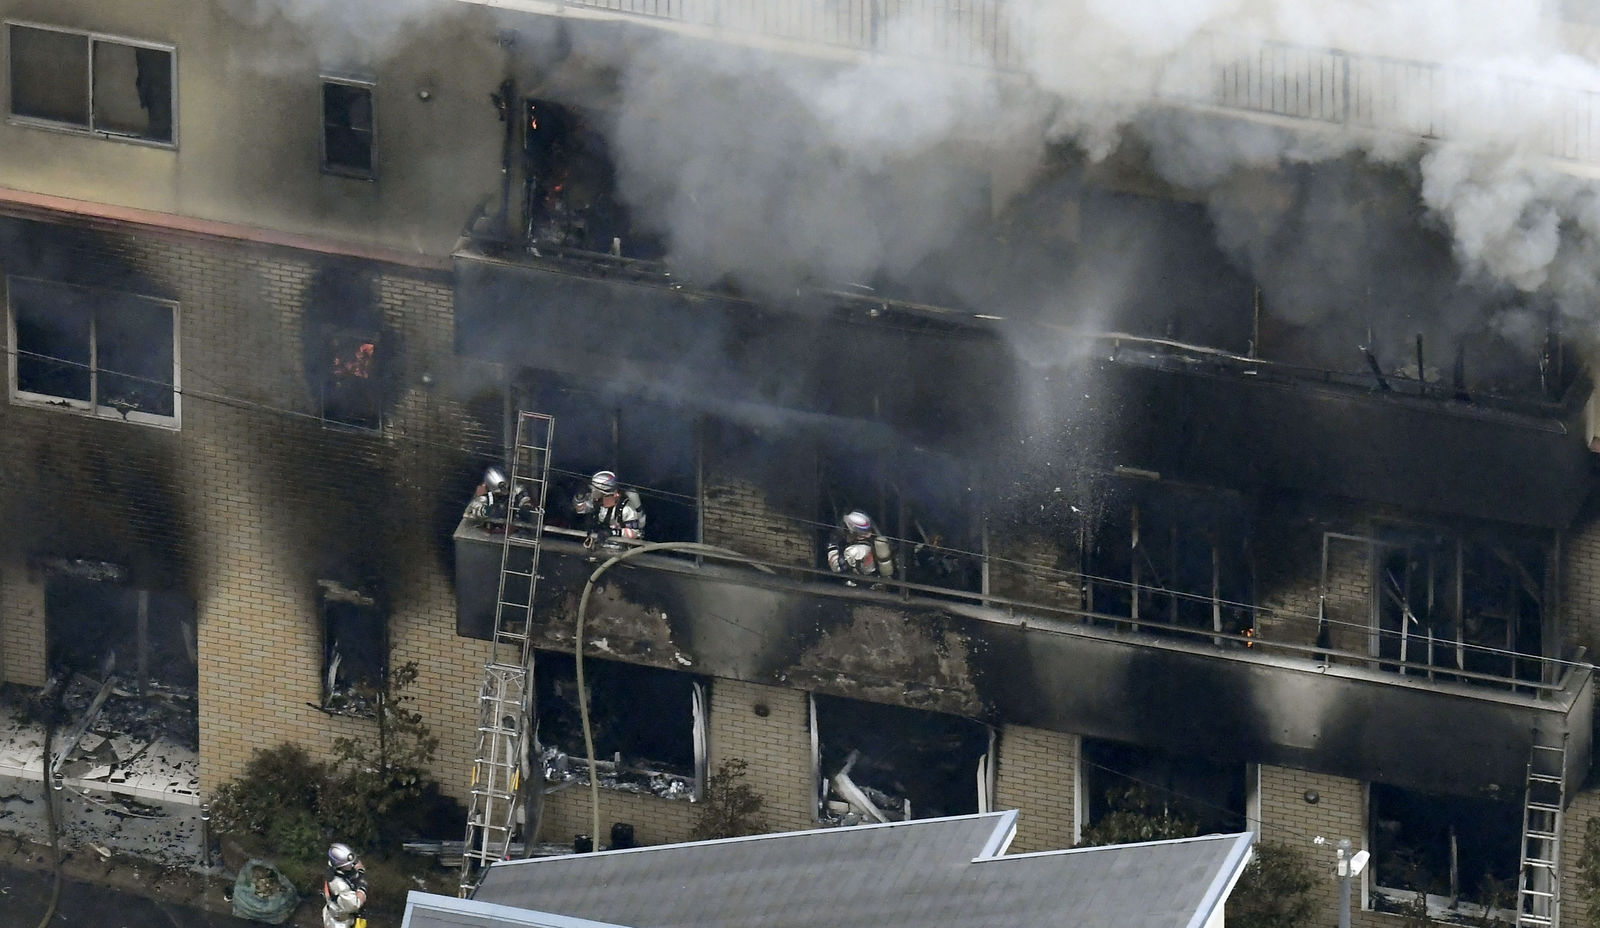 Smoke billows from a Kyoto Animation buildin in Kyoto, western Japan, Thursday, July 18, 2019. The fire broke out in the three-story building in Japan's ancient capital of Kyoto, after a suspect sprayed an unidentified liquid to accelerate the blaze, Kyoto prefectural police and fire department officials said.(Kyodo News via AP)